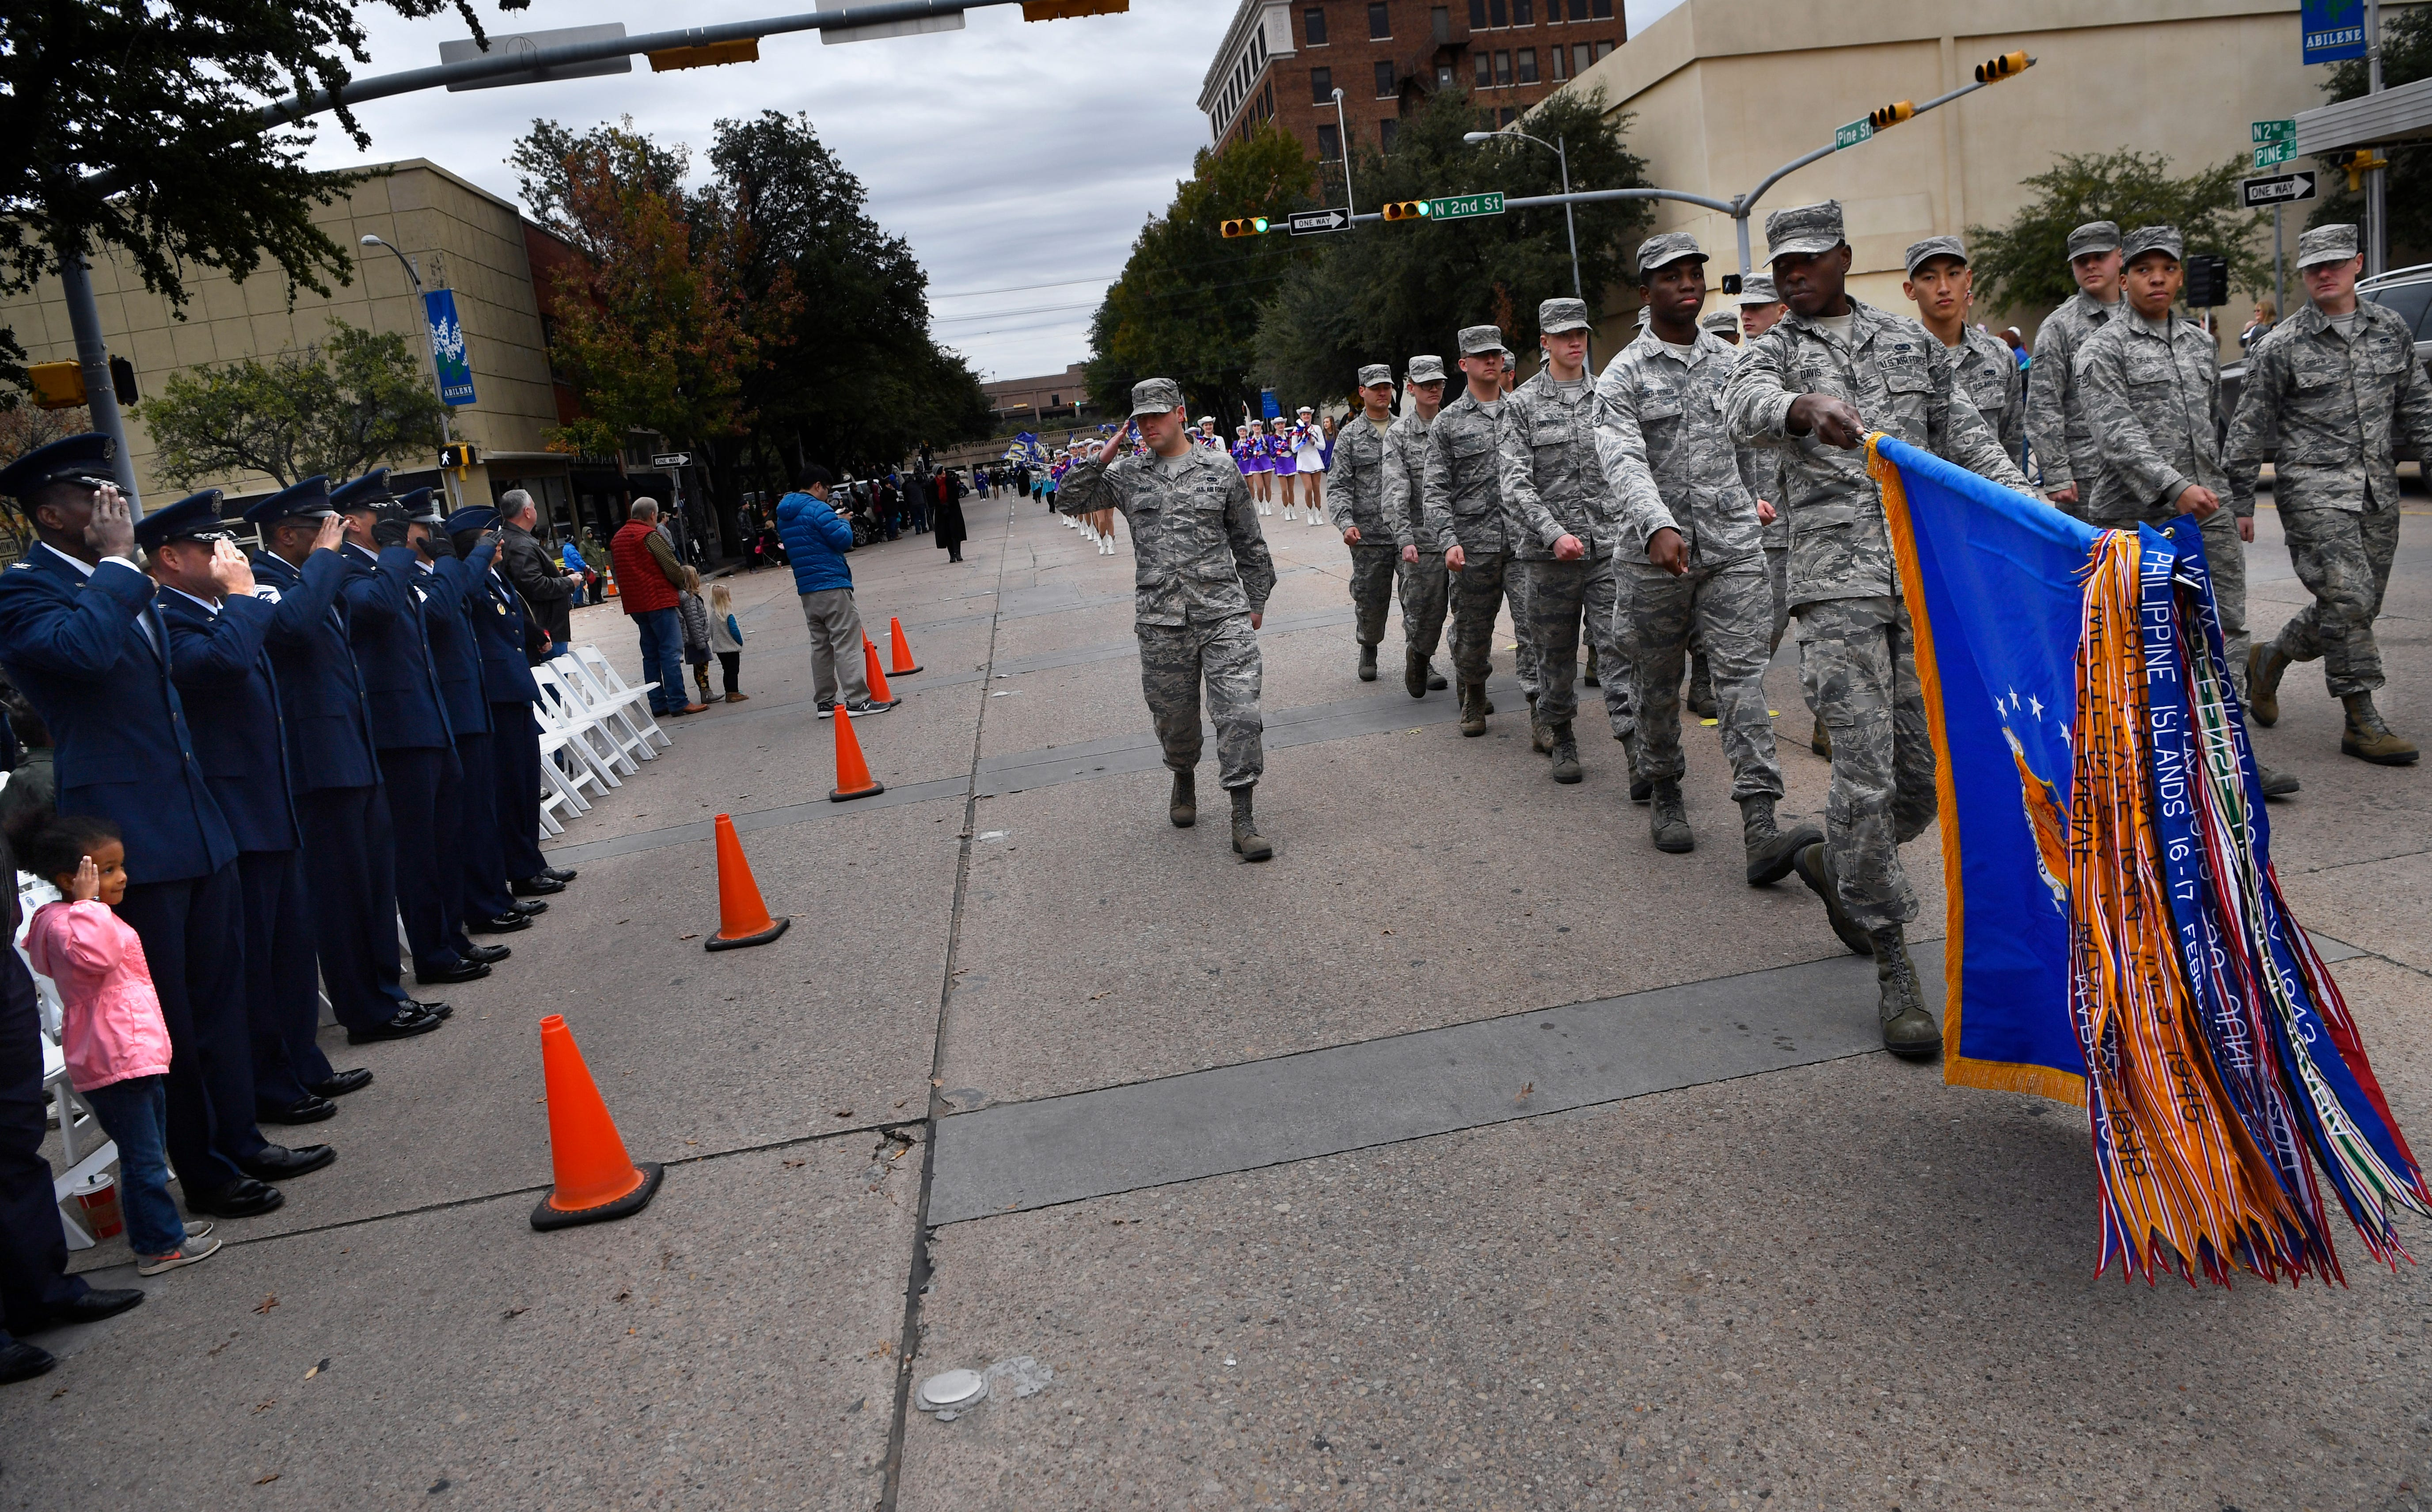 U.S. Air Force members salute senior officers from Dyess Air Force Base and the parade stand during Saturday's Veterans Day parade in downtown Abilene.